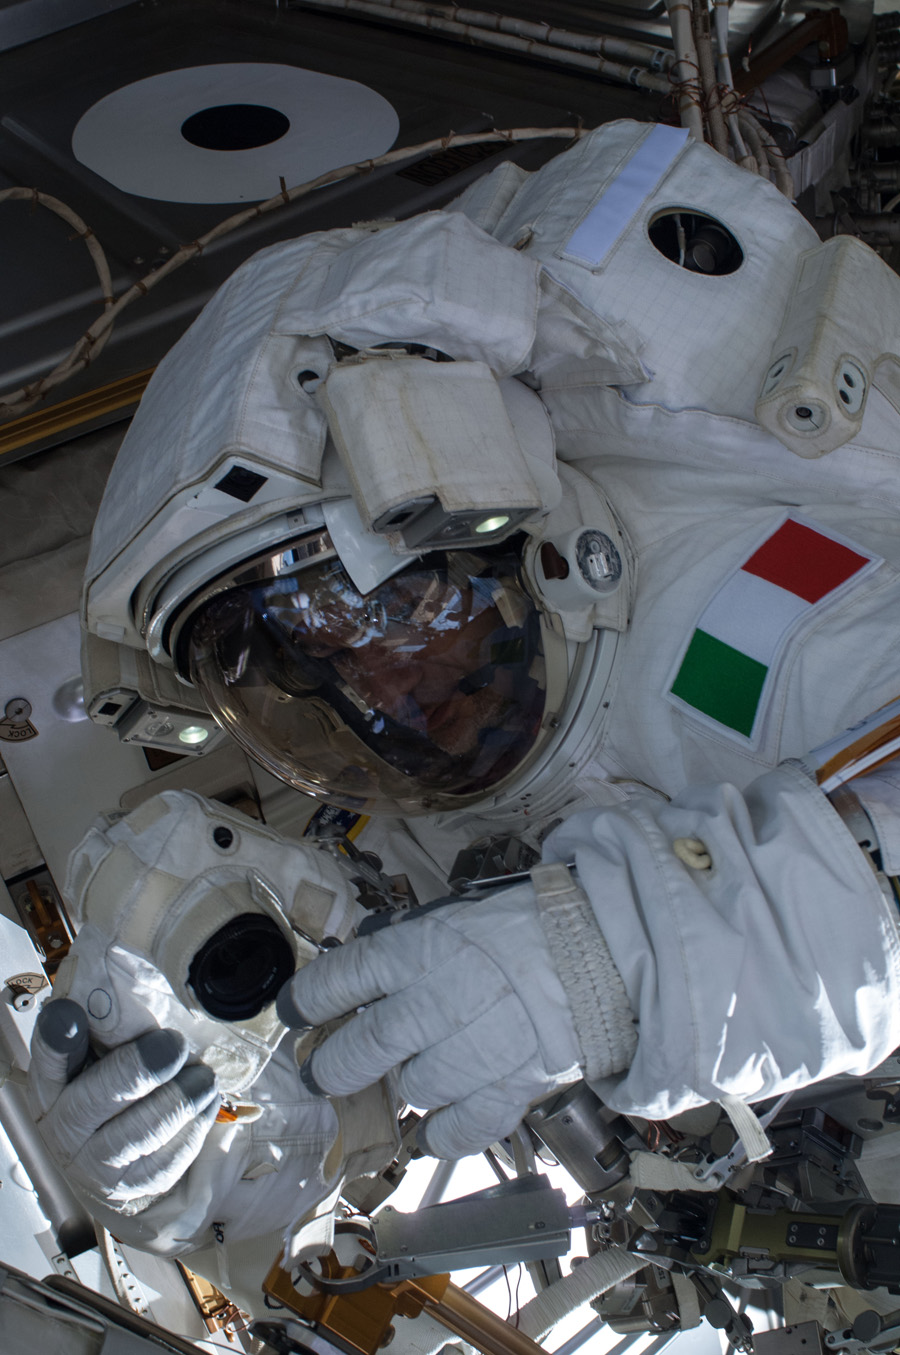 NASA Mishap Panel to Investigate Aborted Spacewalk